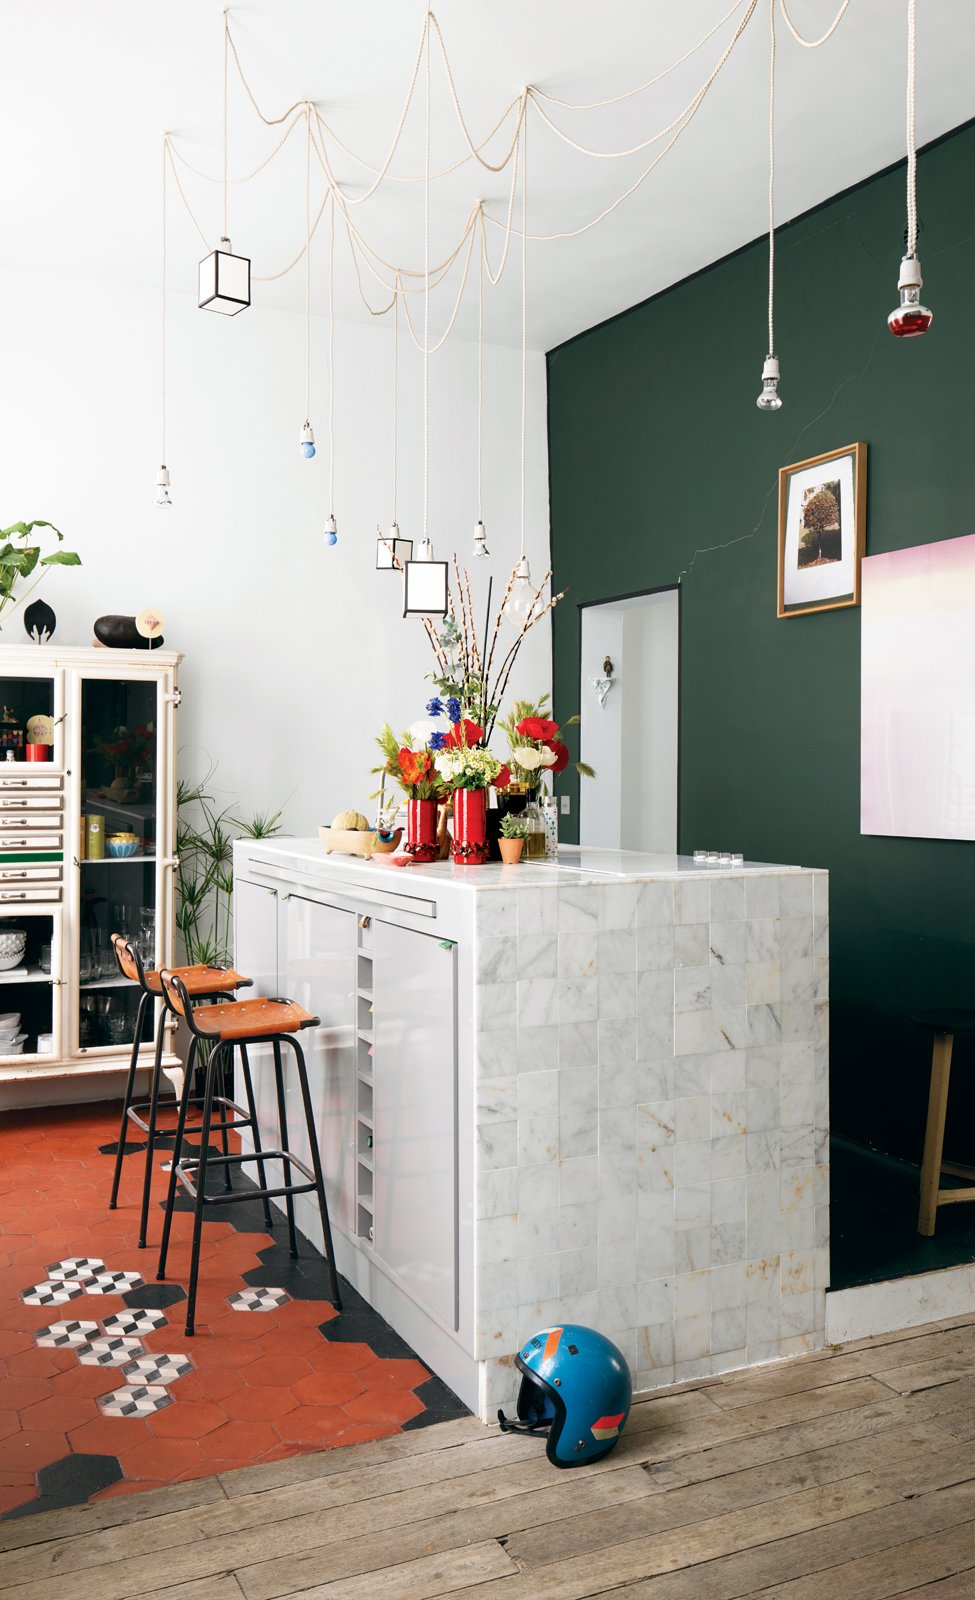 Kitchen and Marble Counter Aumas designed the kitchen island, which is covered in marble tiles from Carrelages du Marais—the geometric floor tiles are from the same place—and strung the matrix of lights up above it. The barstools by Charlotte Perriand were discovered in a vintage store in Antwerp, Belgium. The green wall is covered in paint from Emery & Cie.  Material Focus: Marble by Diana Budds from A Furniture Collector's Renovated Flat in Paris